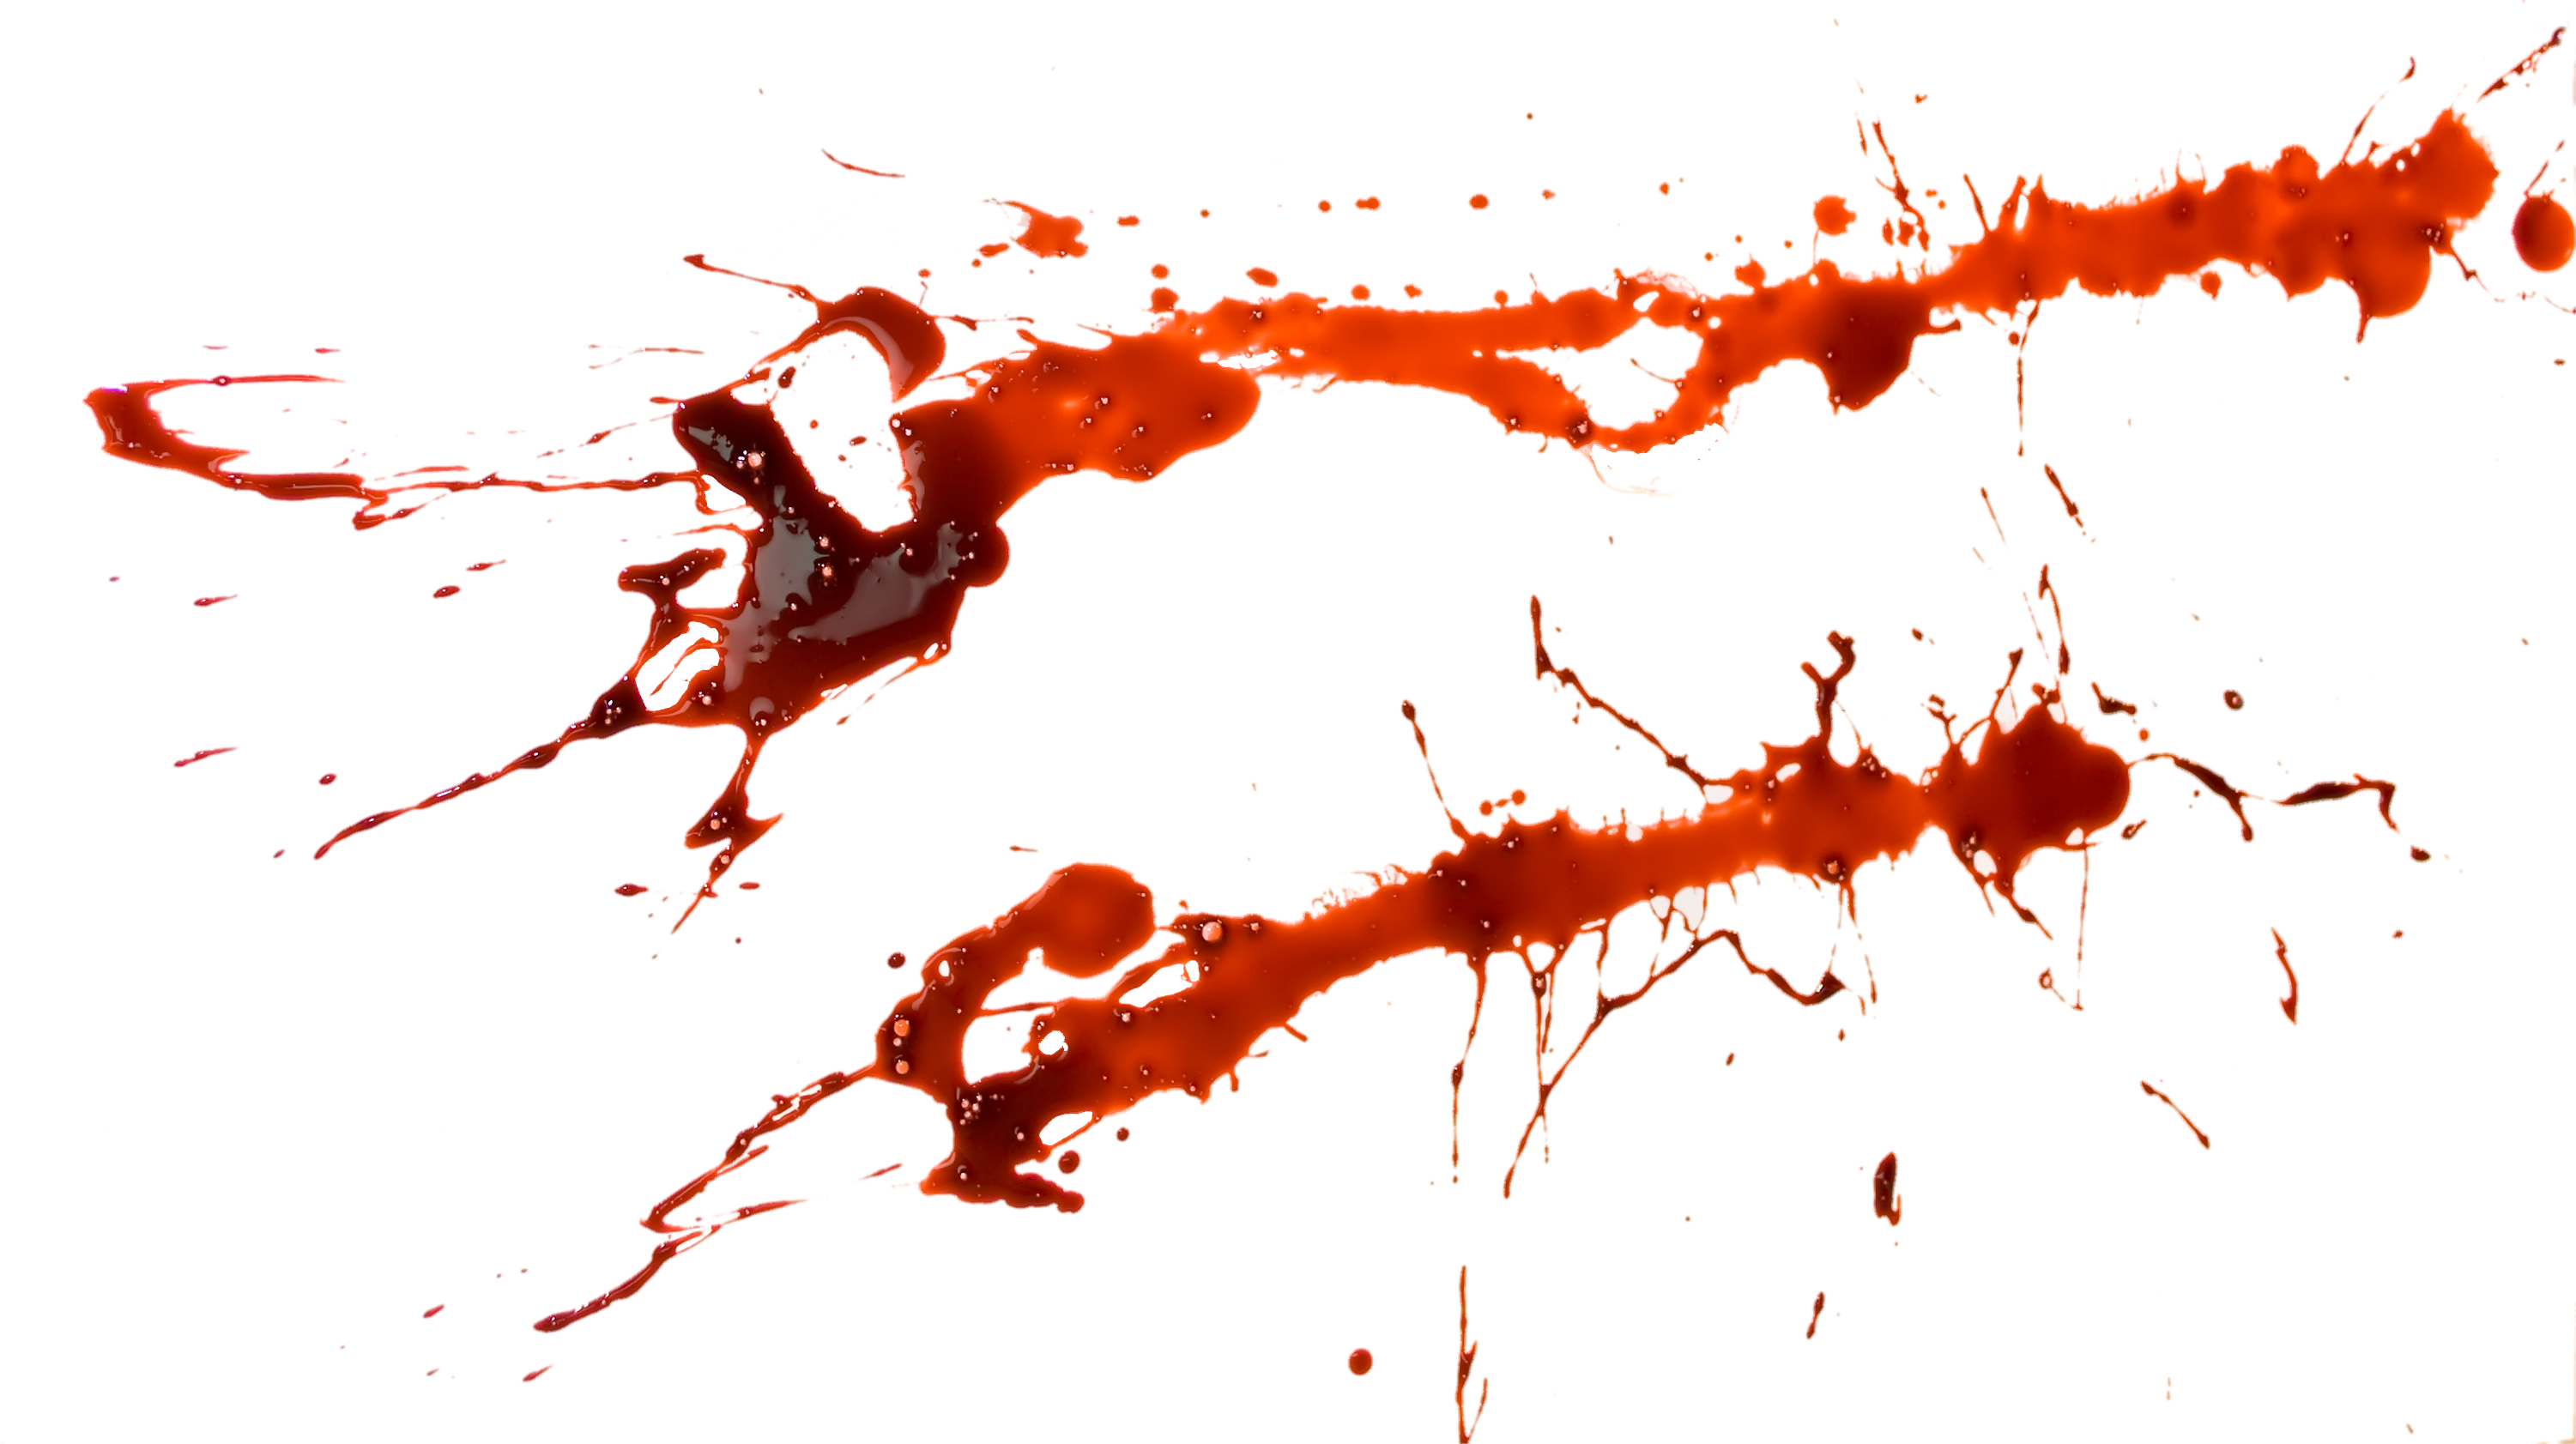 Blood splatter 86